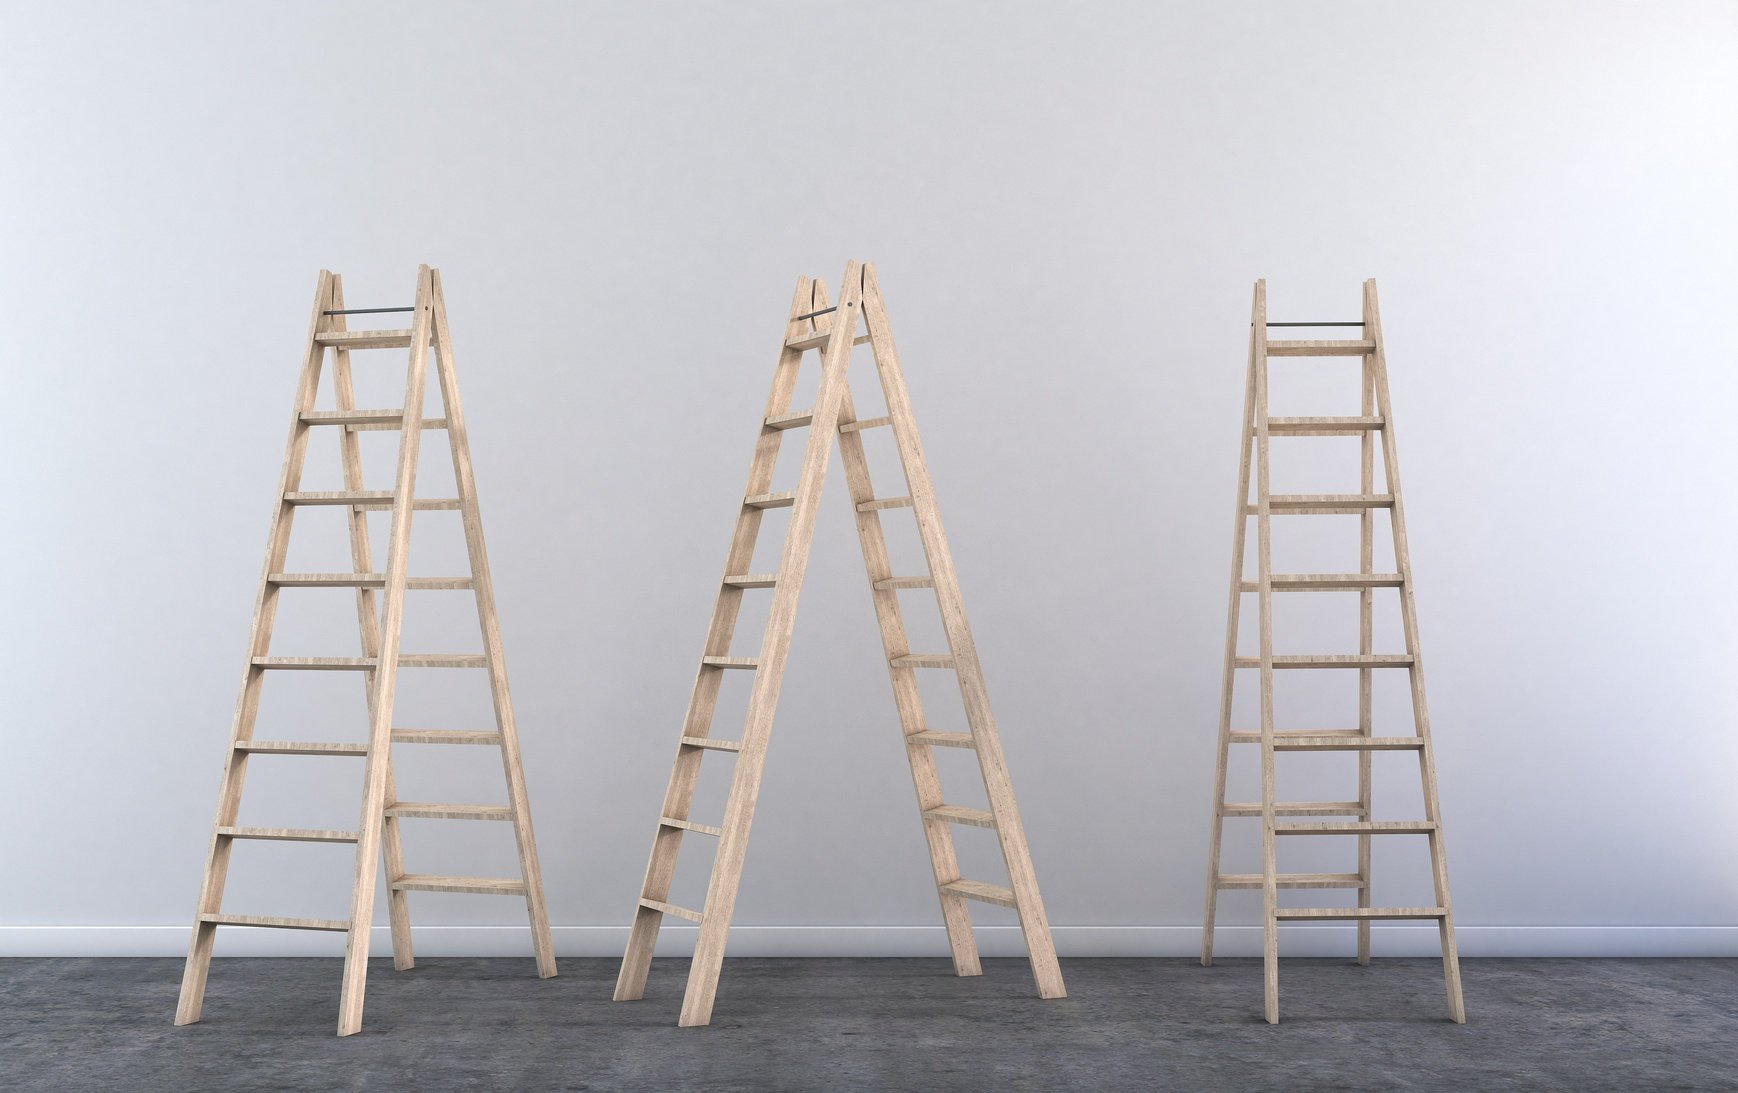 Ladder in 3 Positions